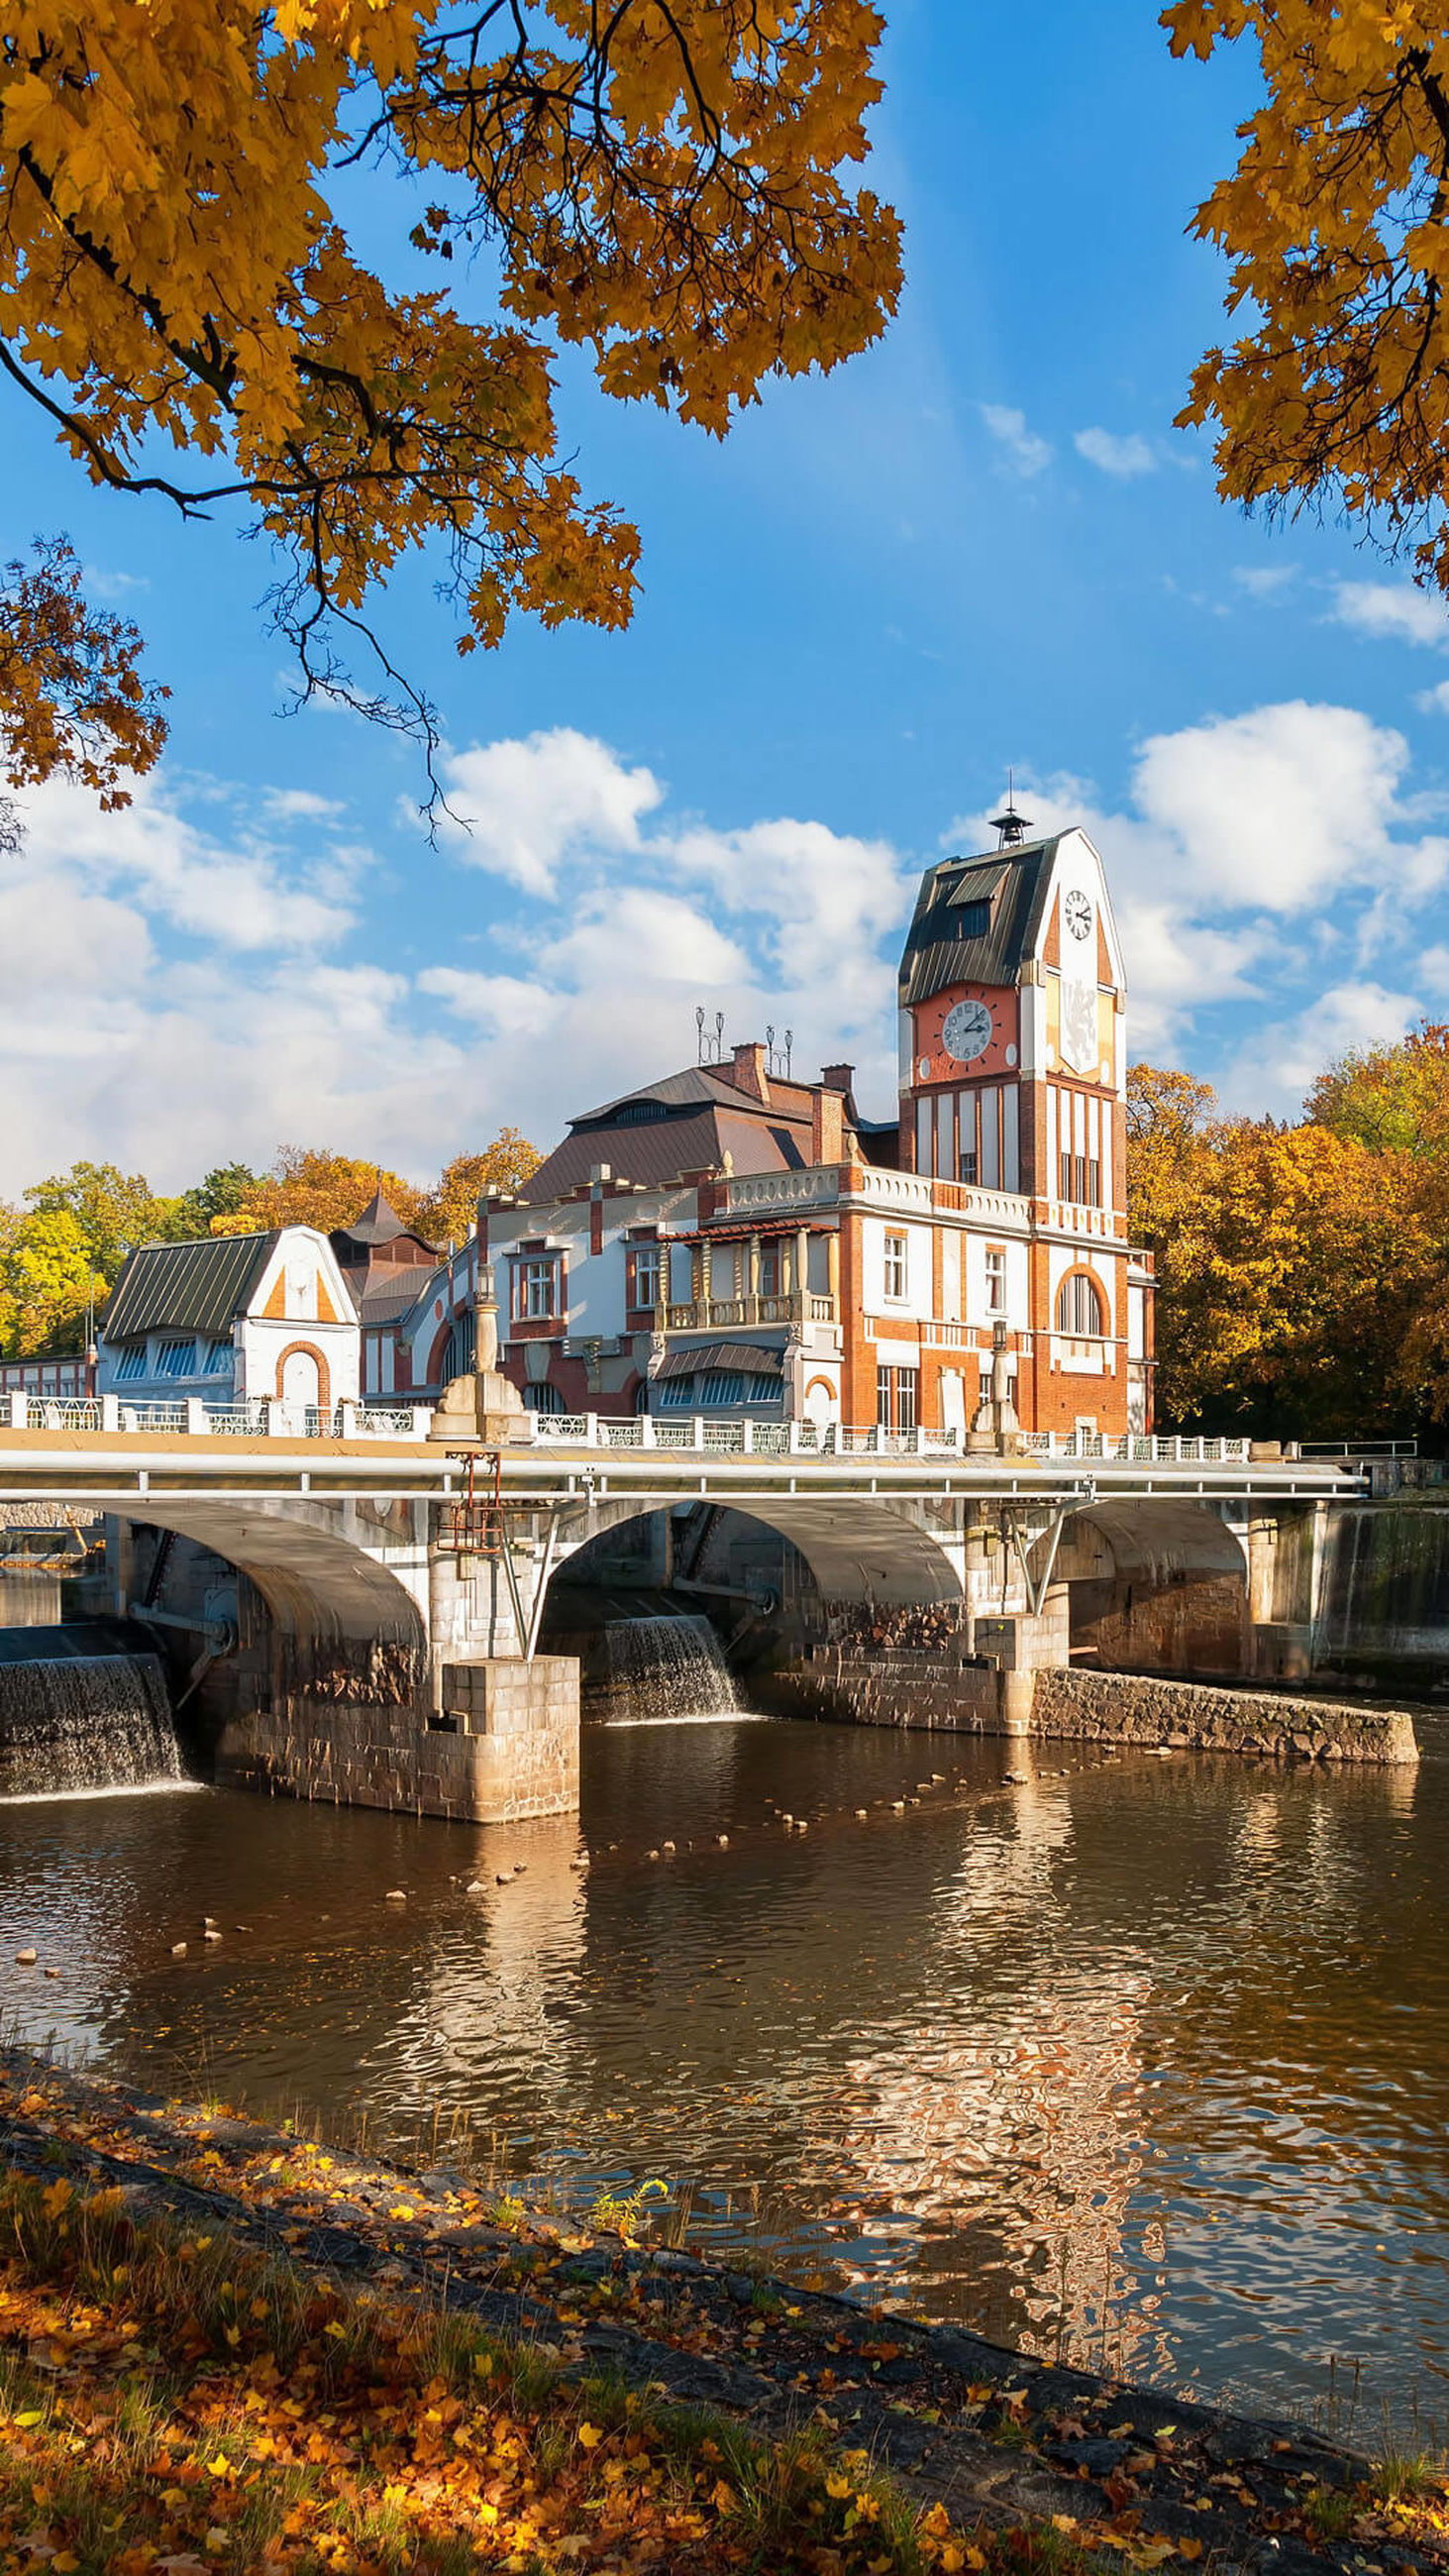 built structure, architecture, building exterior, water, connection, tree, bridge - man made structure, sky, river, arch, bridge, city, arch bridge, cloud, waterfront, day, branch, cloud - sky, blue, town, outdoors, canal, no people, seine river